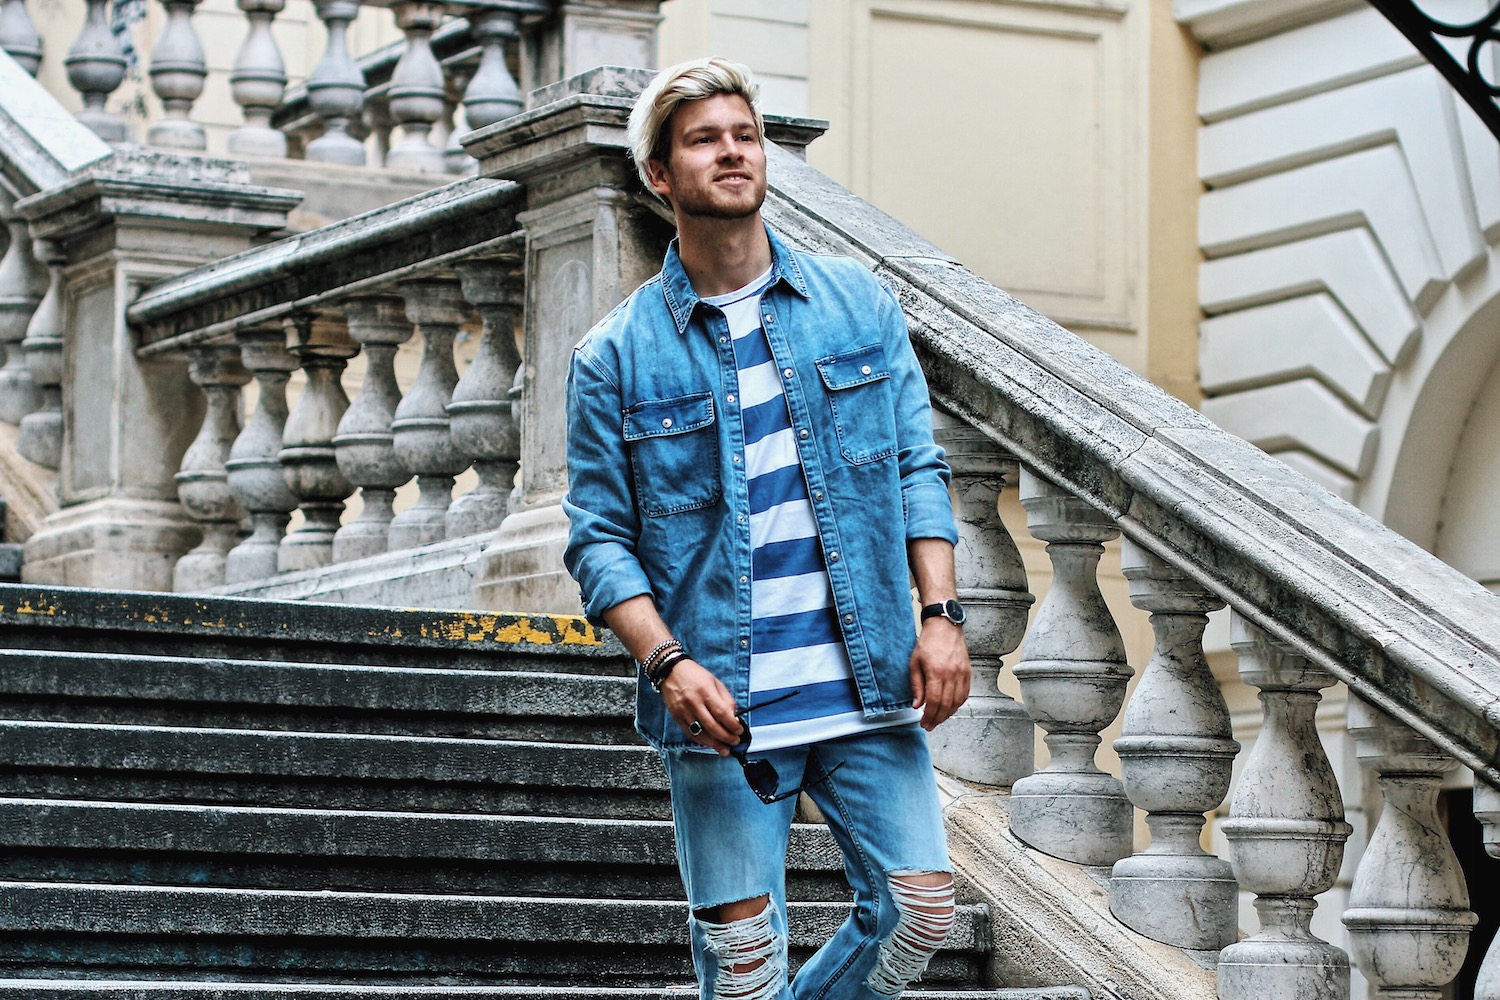 Outfit H&M Denim on Denim Look Ripped Jeans Denim Shirt Striped Tee by Meanwhile in Awesometown Austrian Mensfashion and Lifestyleblogger 4